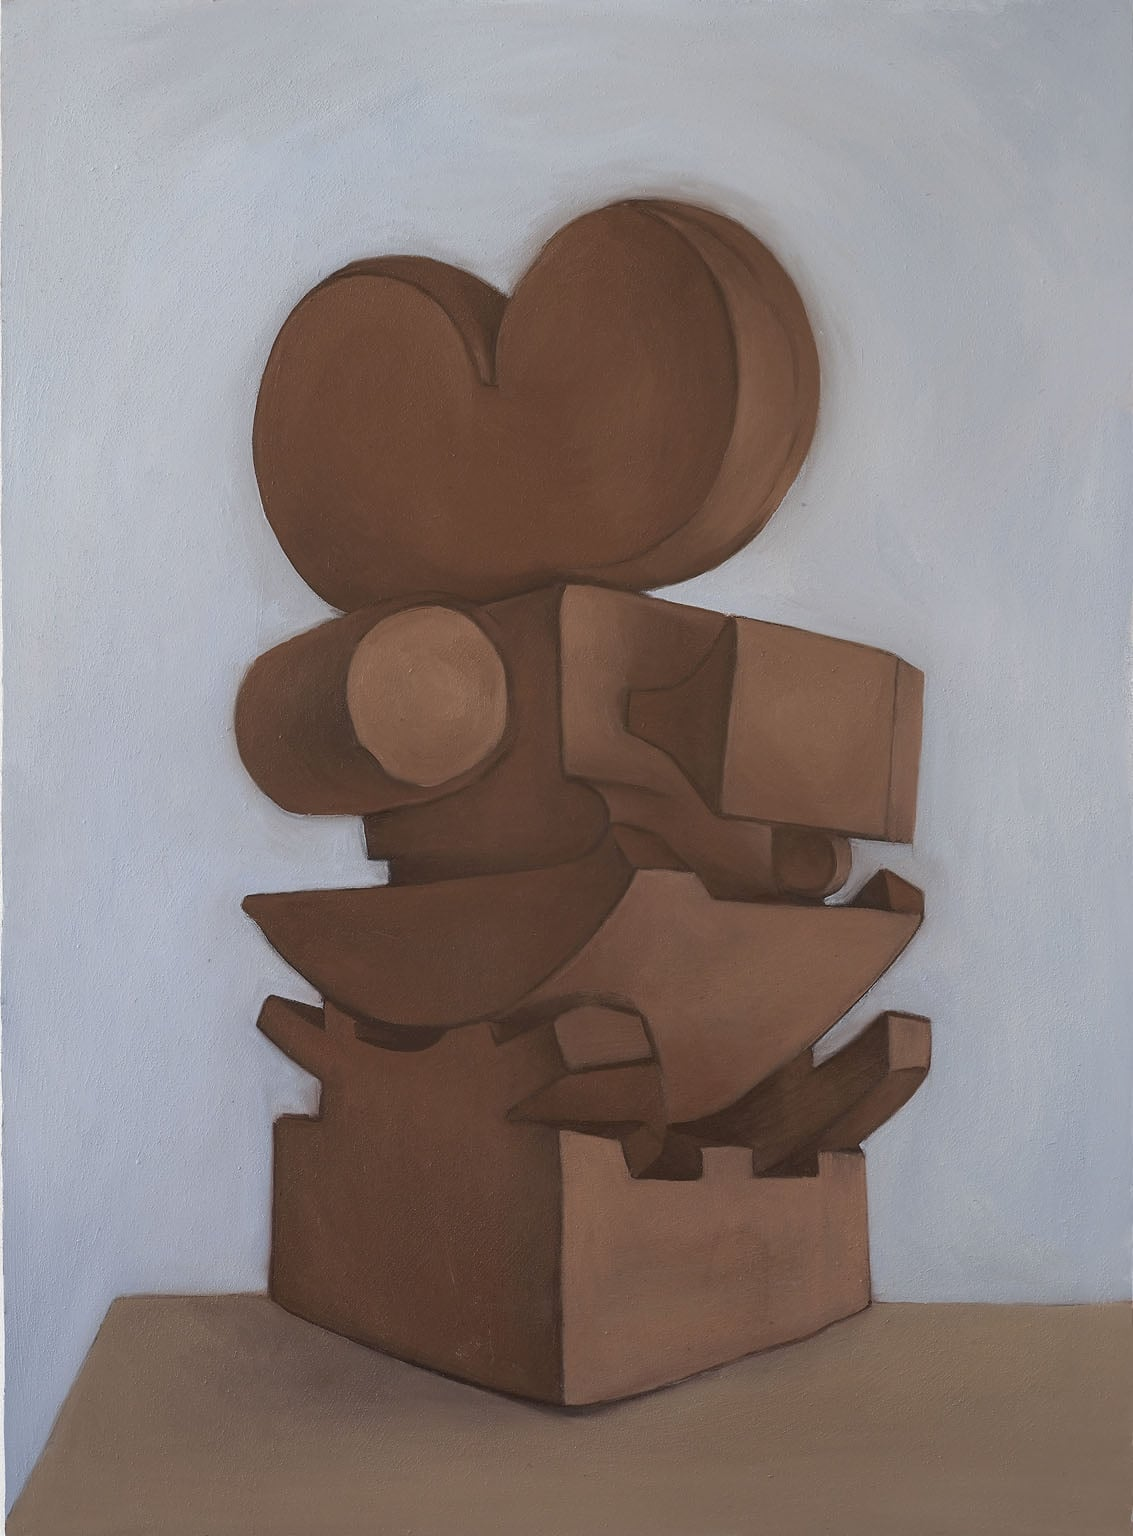 Catherine Story, Lovelock (I), 2010 - Private collection, London © Catherine Story